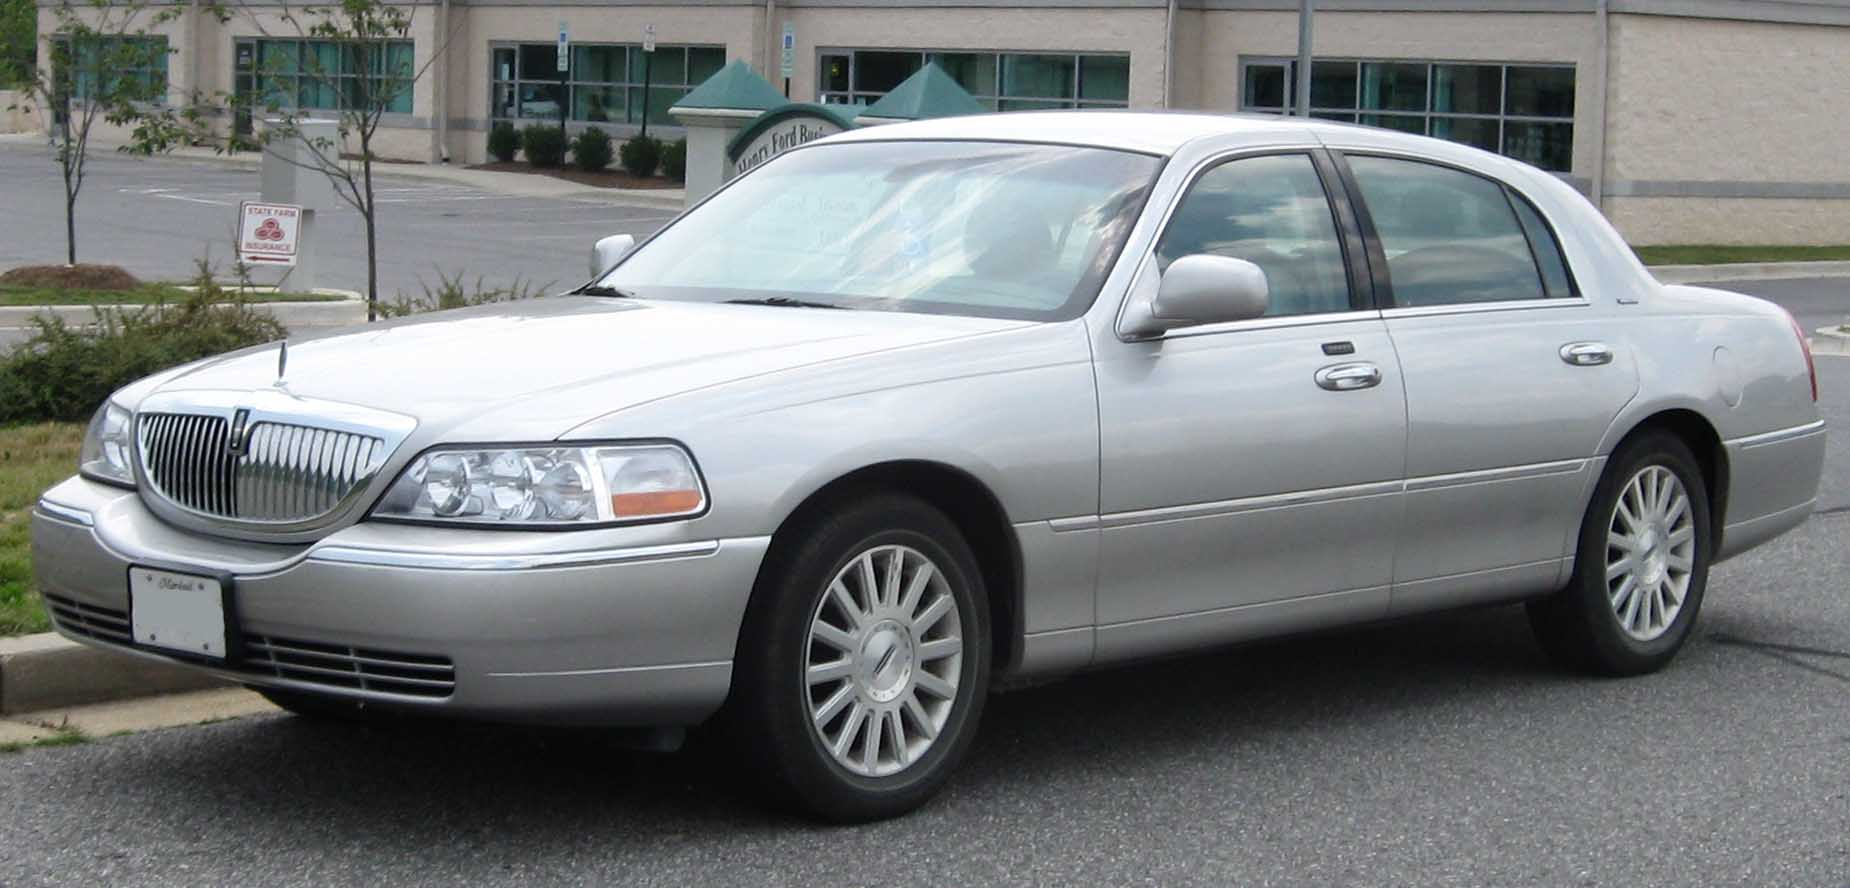 hight resolution of wiring diagram for a lincoln limousine